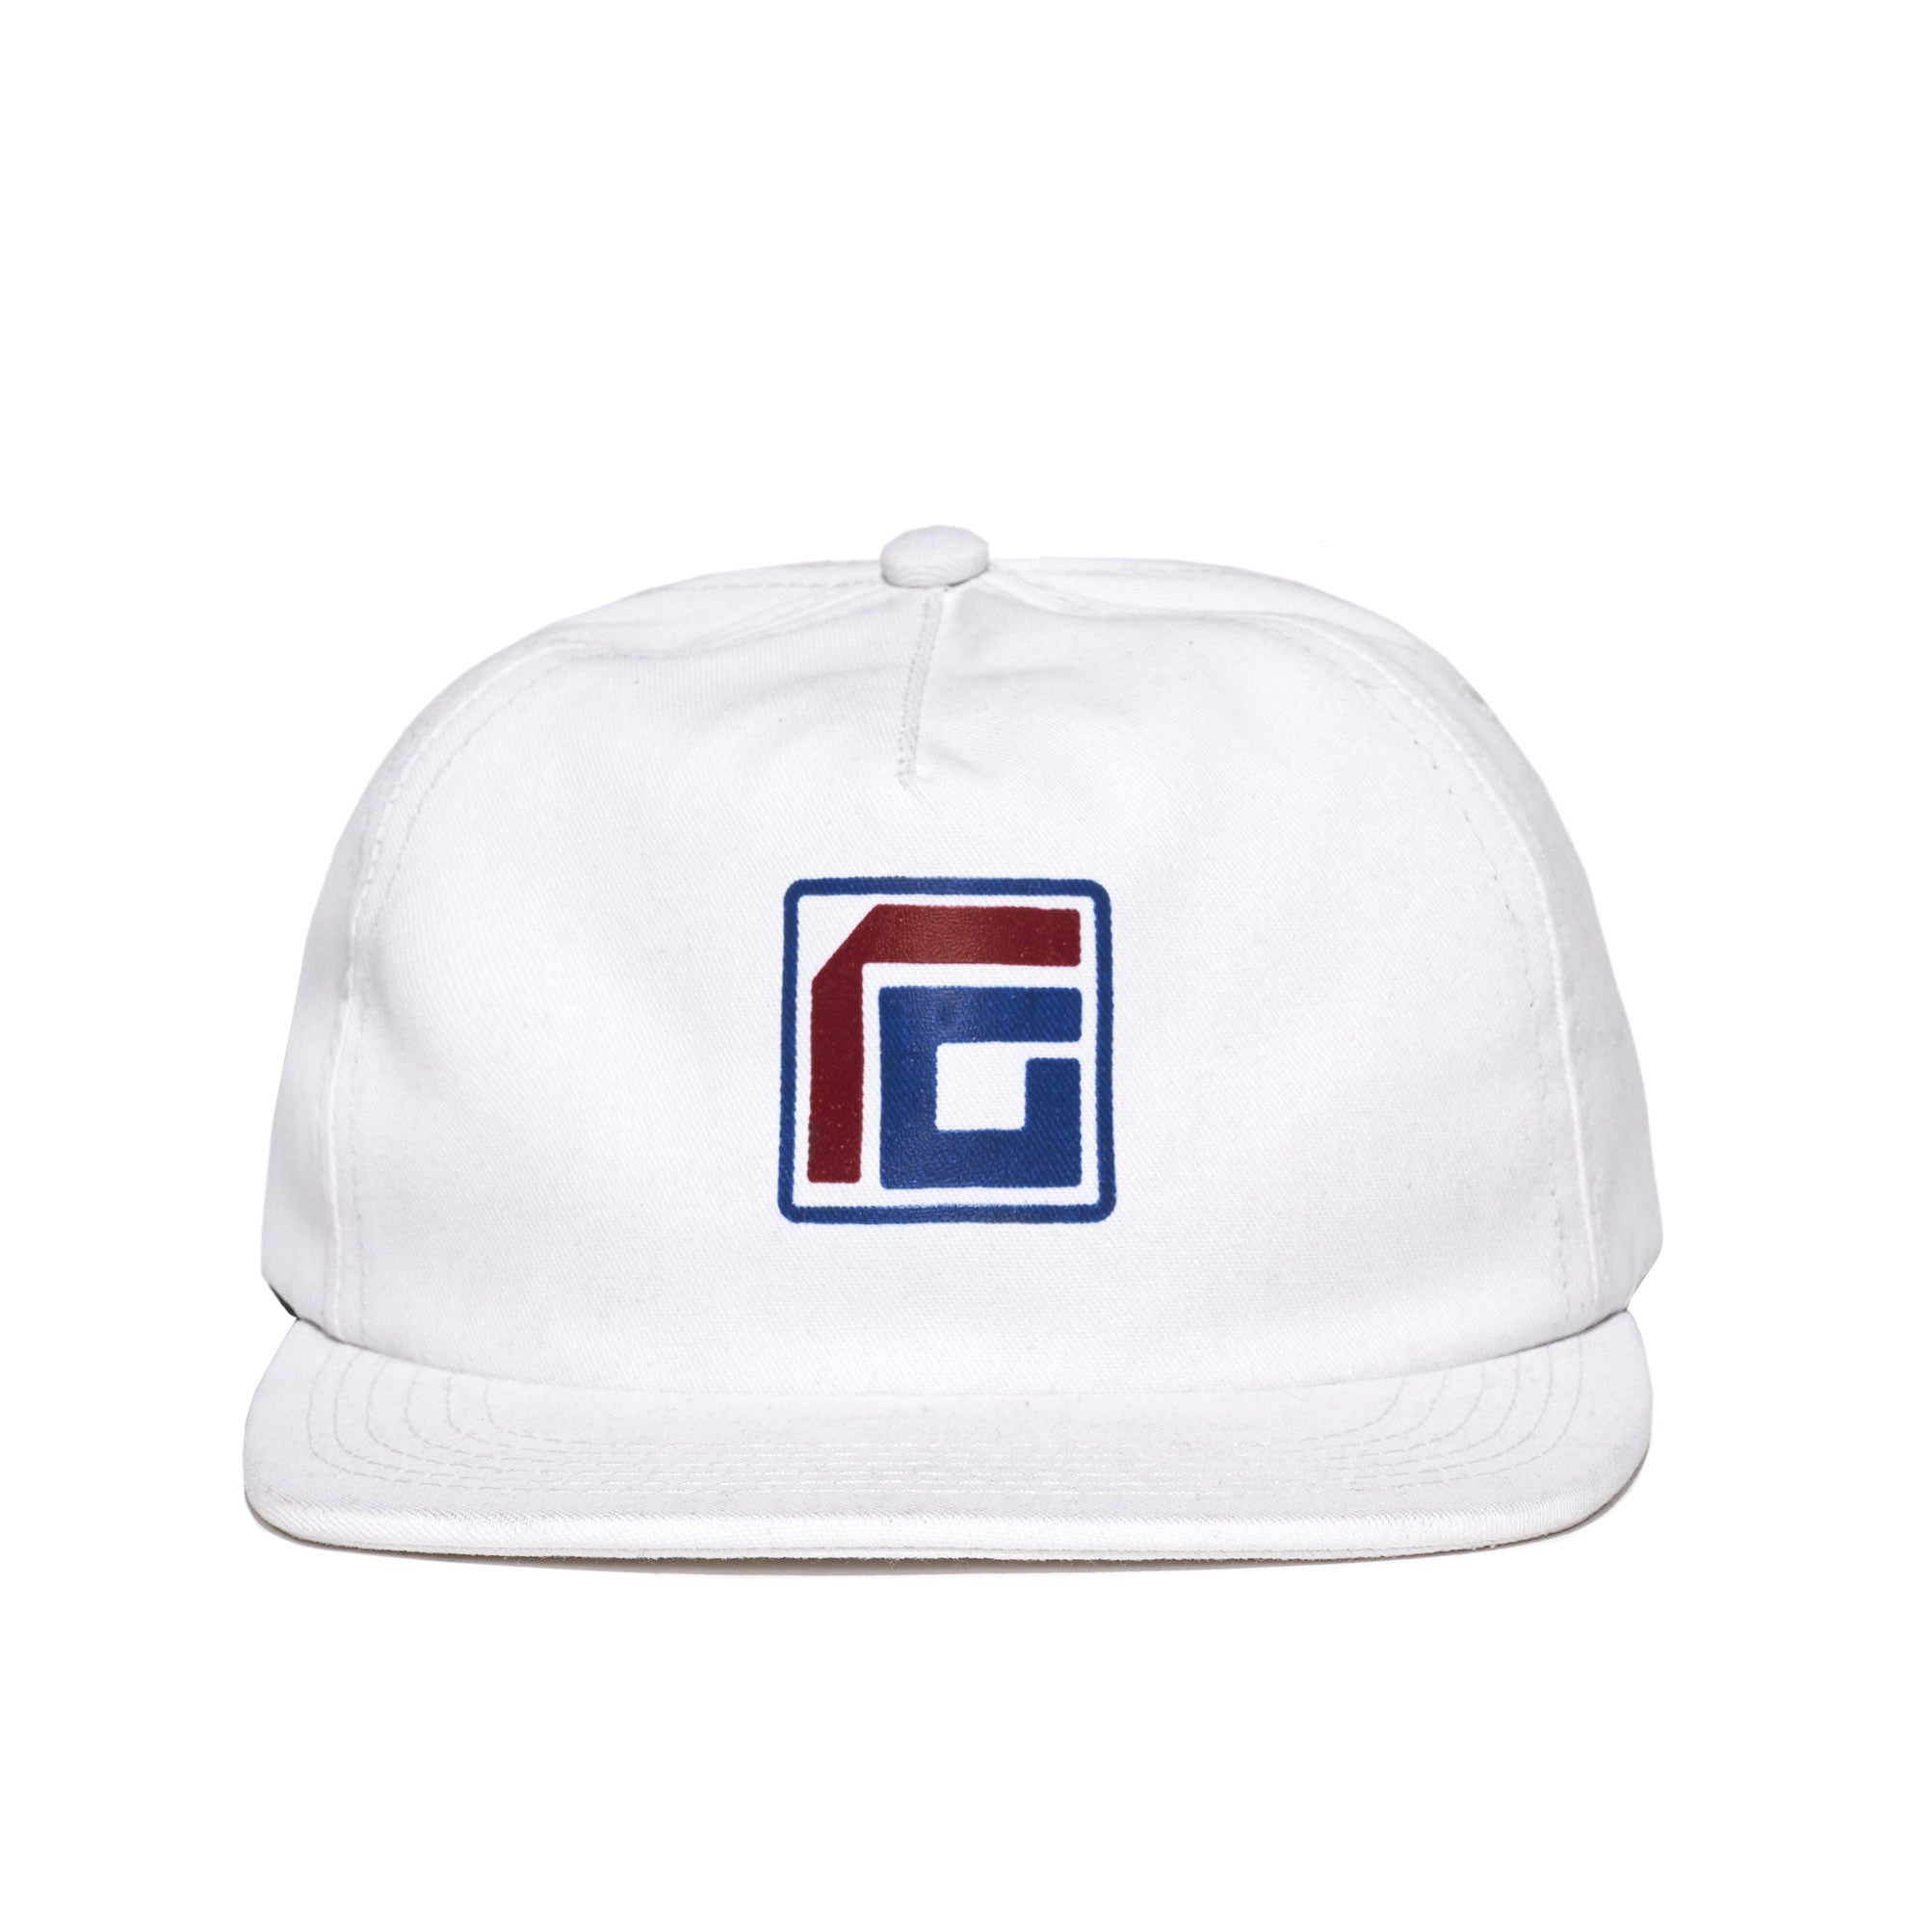 "Fool's Gold ""Match Point"" Cap"